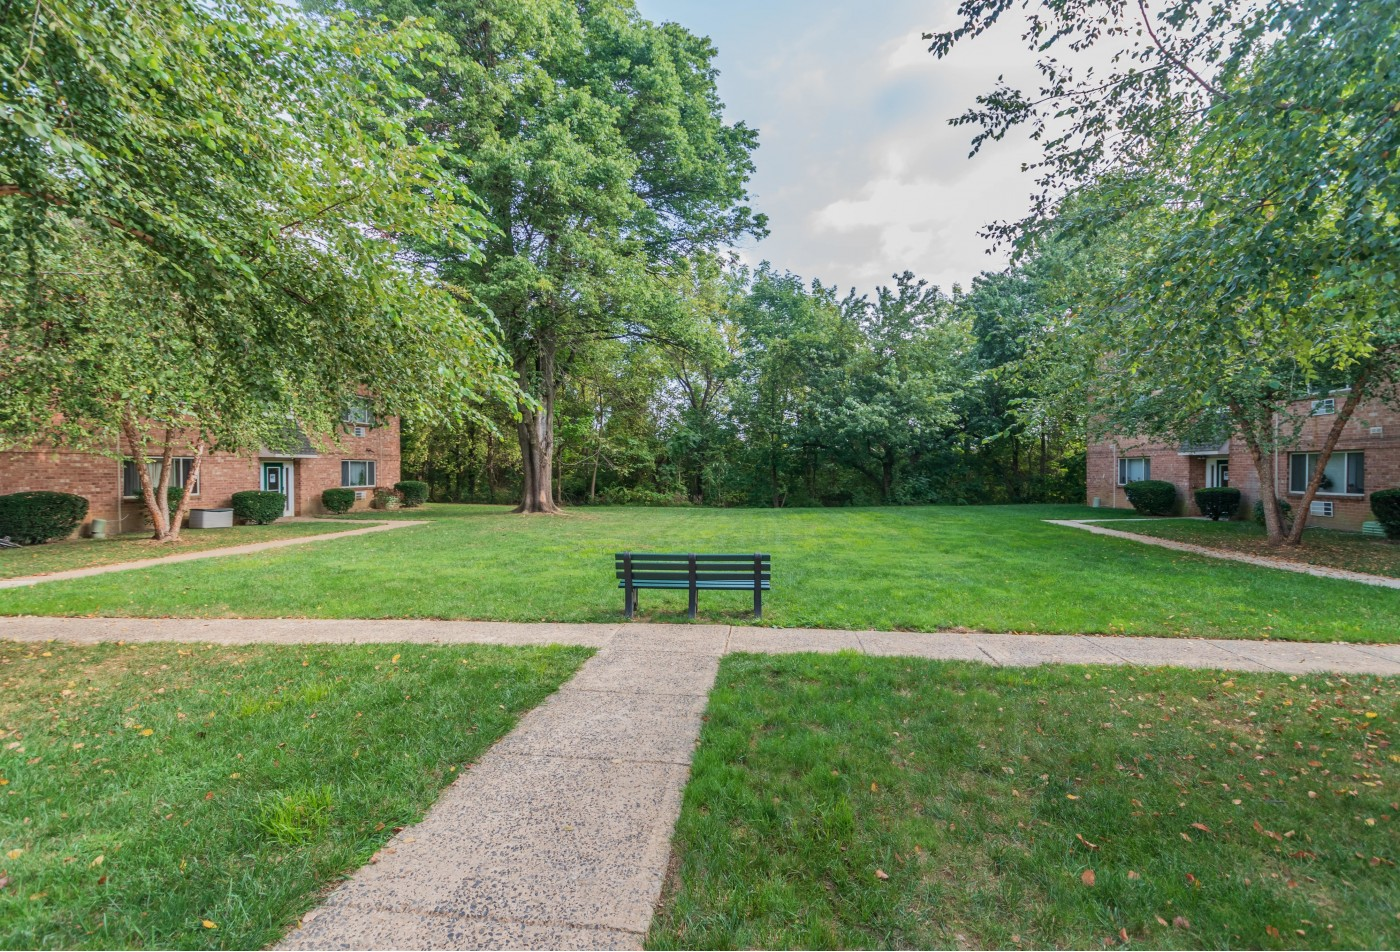 Apartments Homes for rent in Penndel, PA   Millcreek Village Apartments